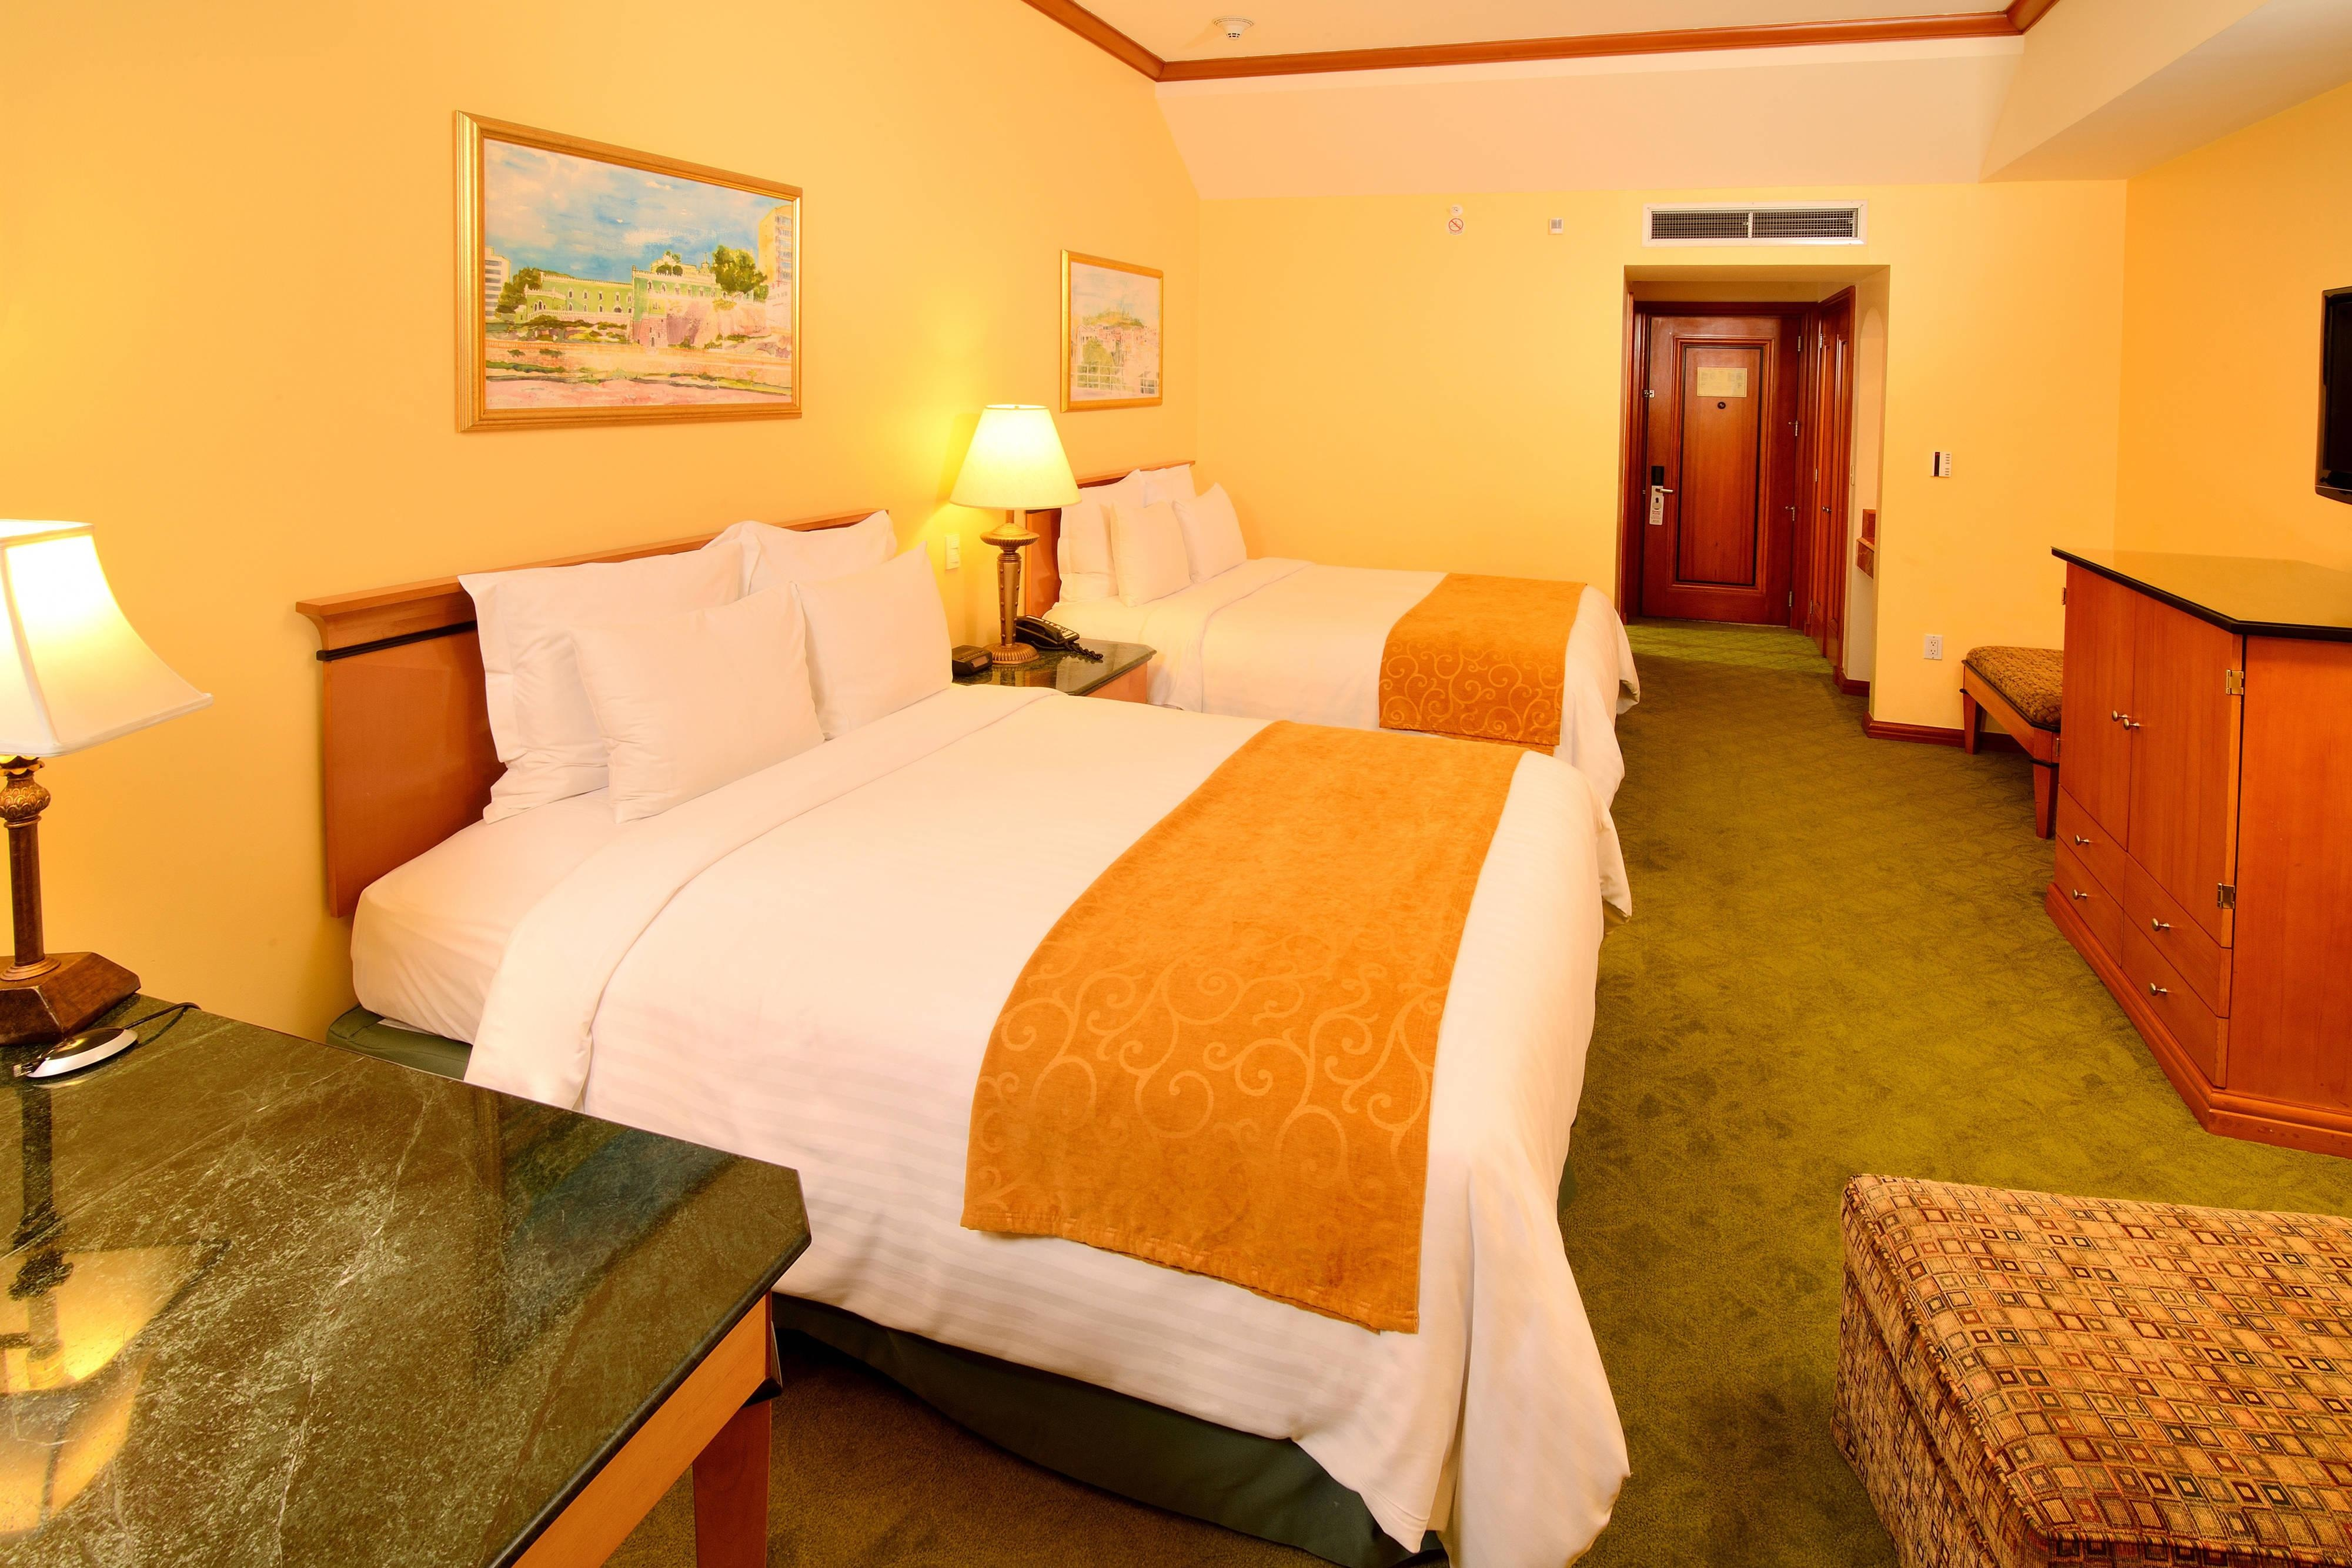 Soundproof Guest Rooms in Tegucigalpa